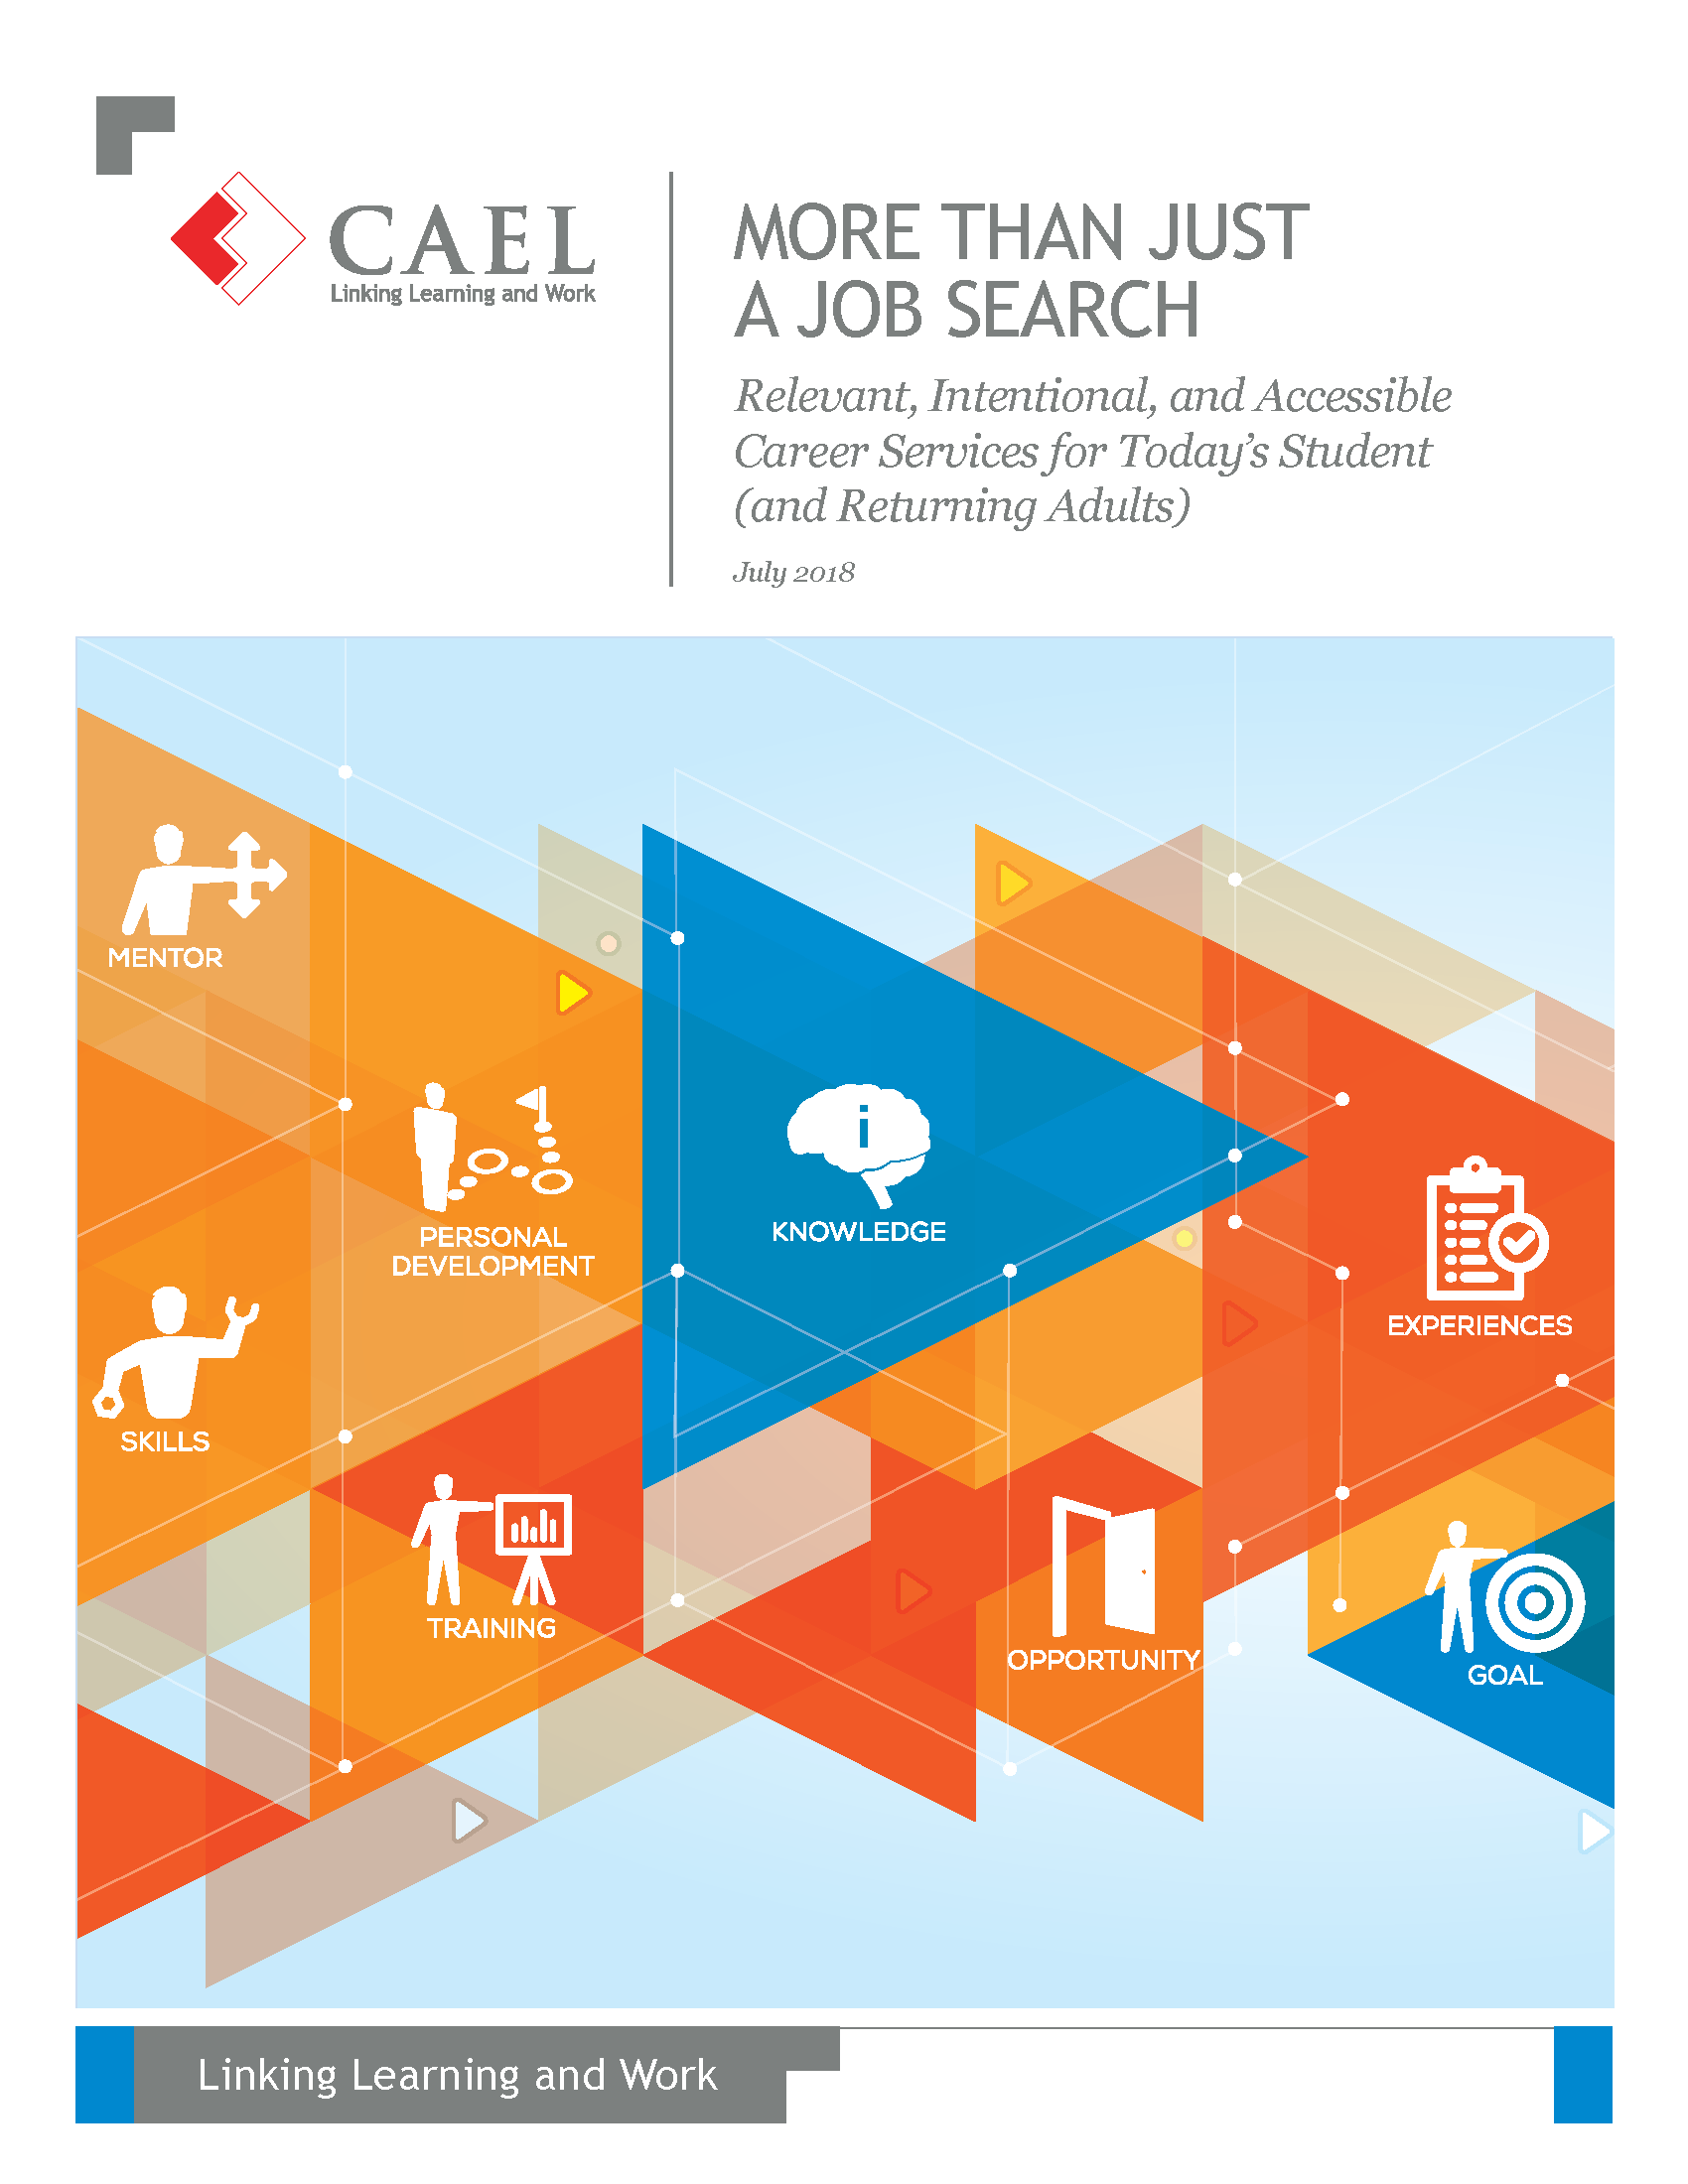 More Than Just a Job Search - Relevant, Intentional and Accessible Career Services for Today's Student (and Returning Adults)